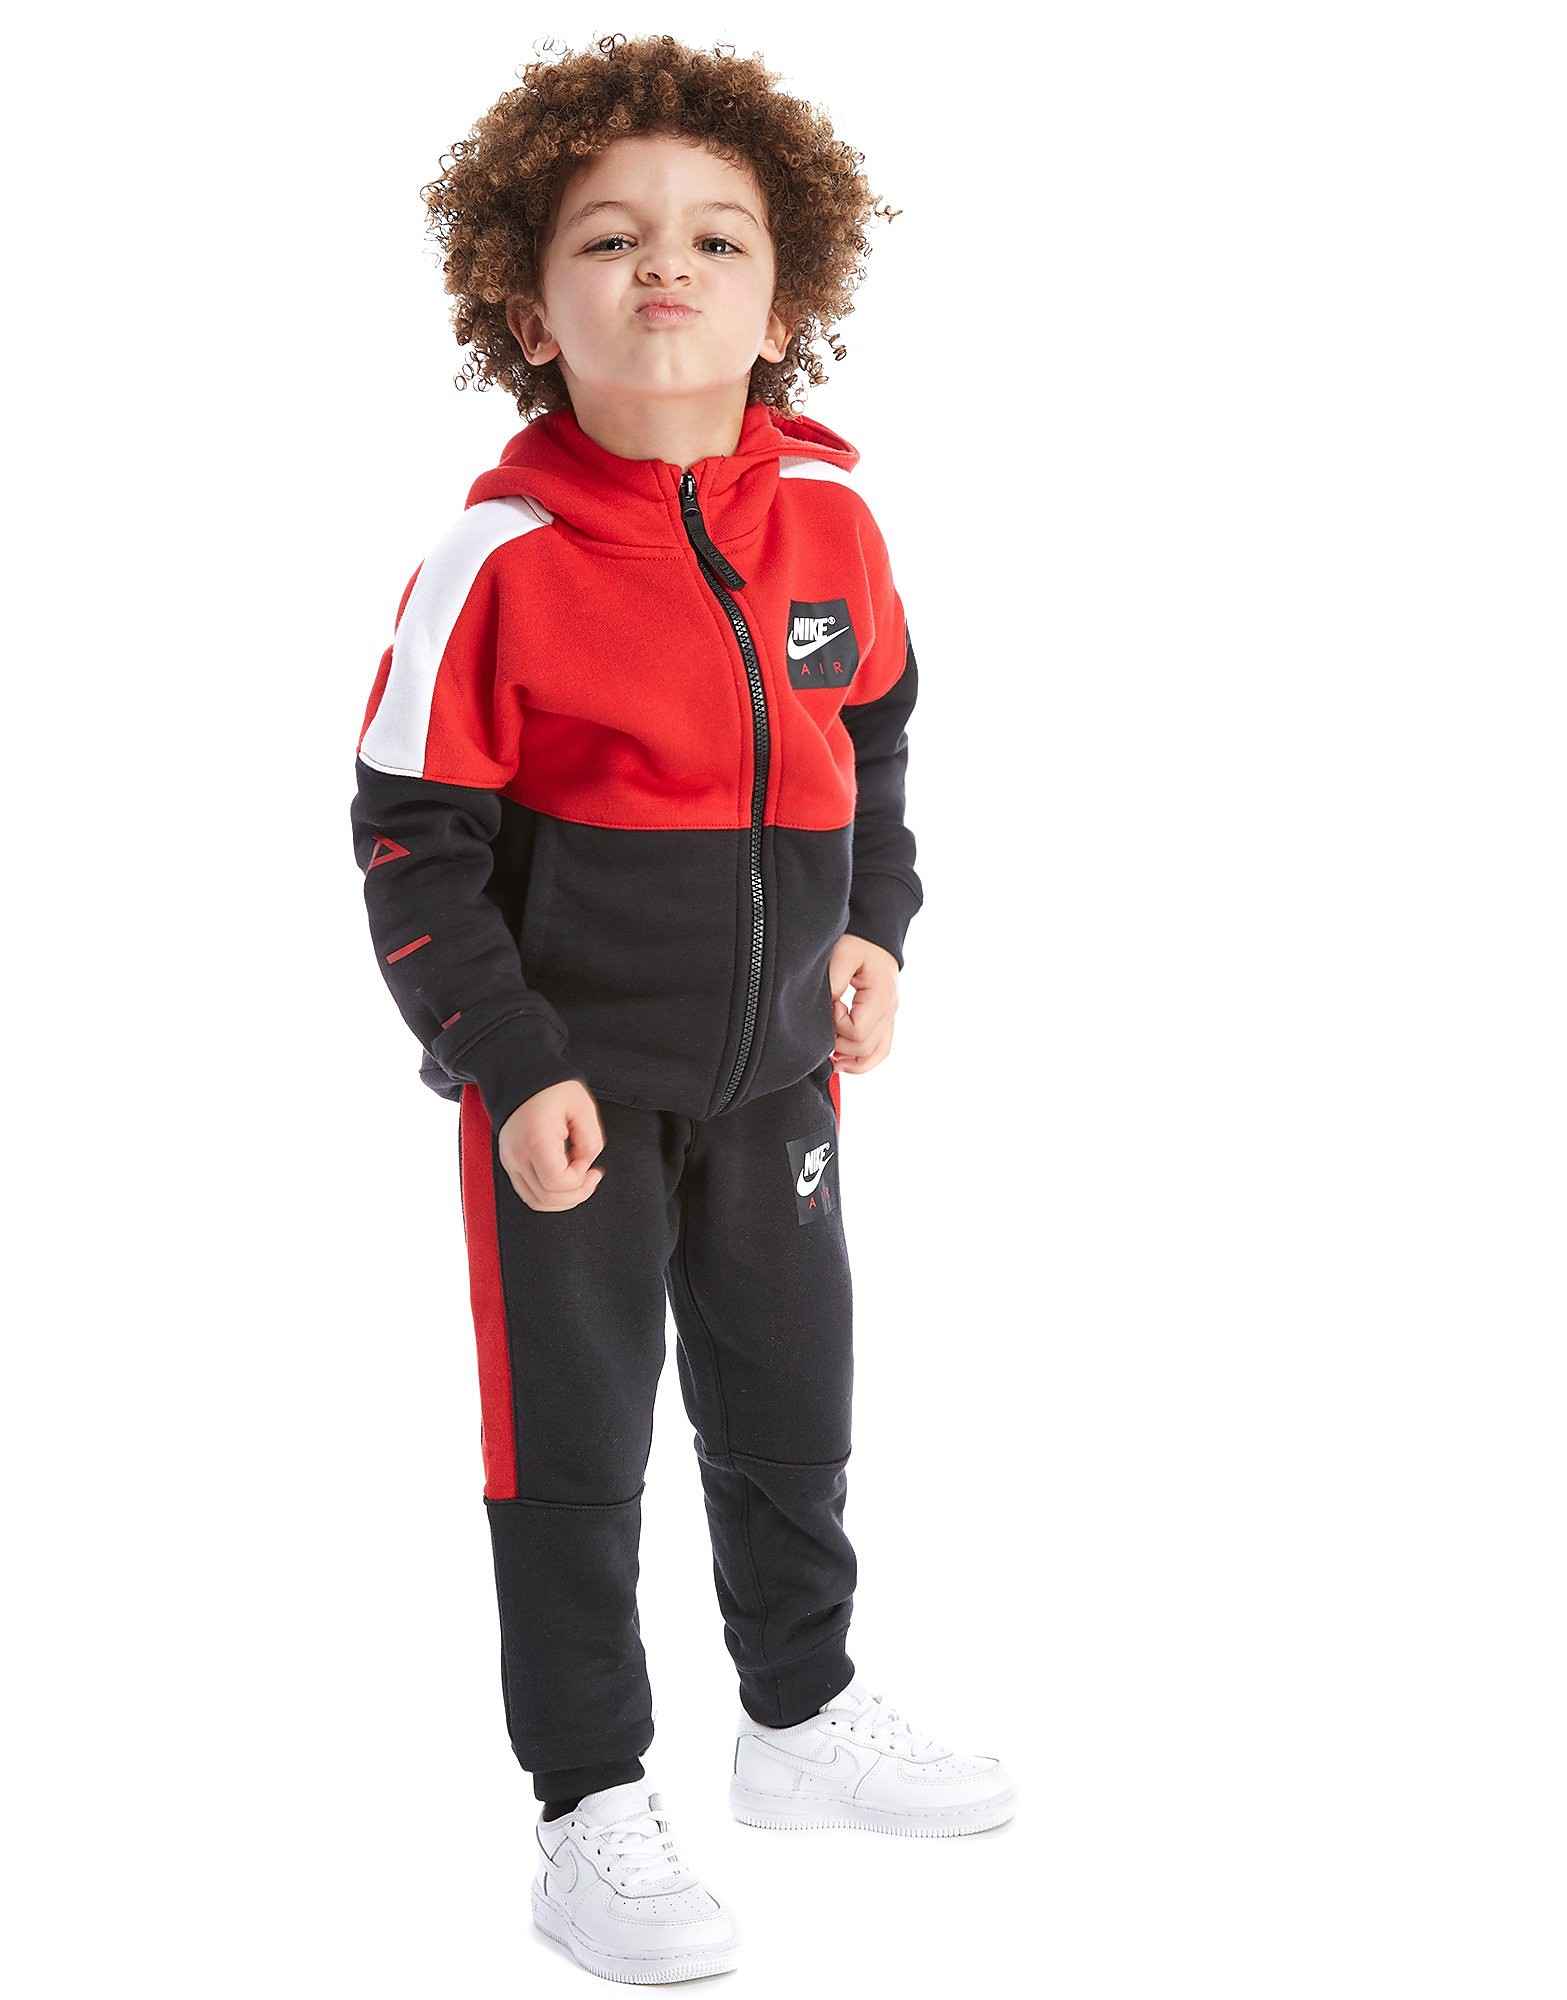 Nike Air Full Zip Tuta Sportiva Bambino